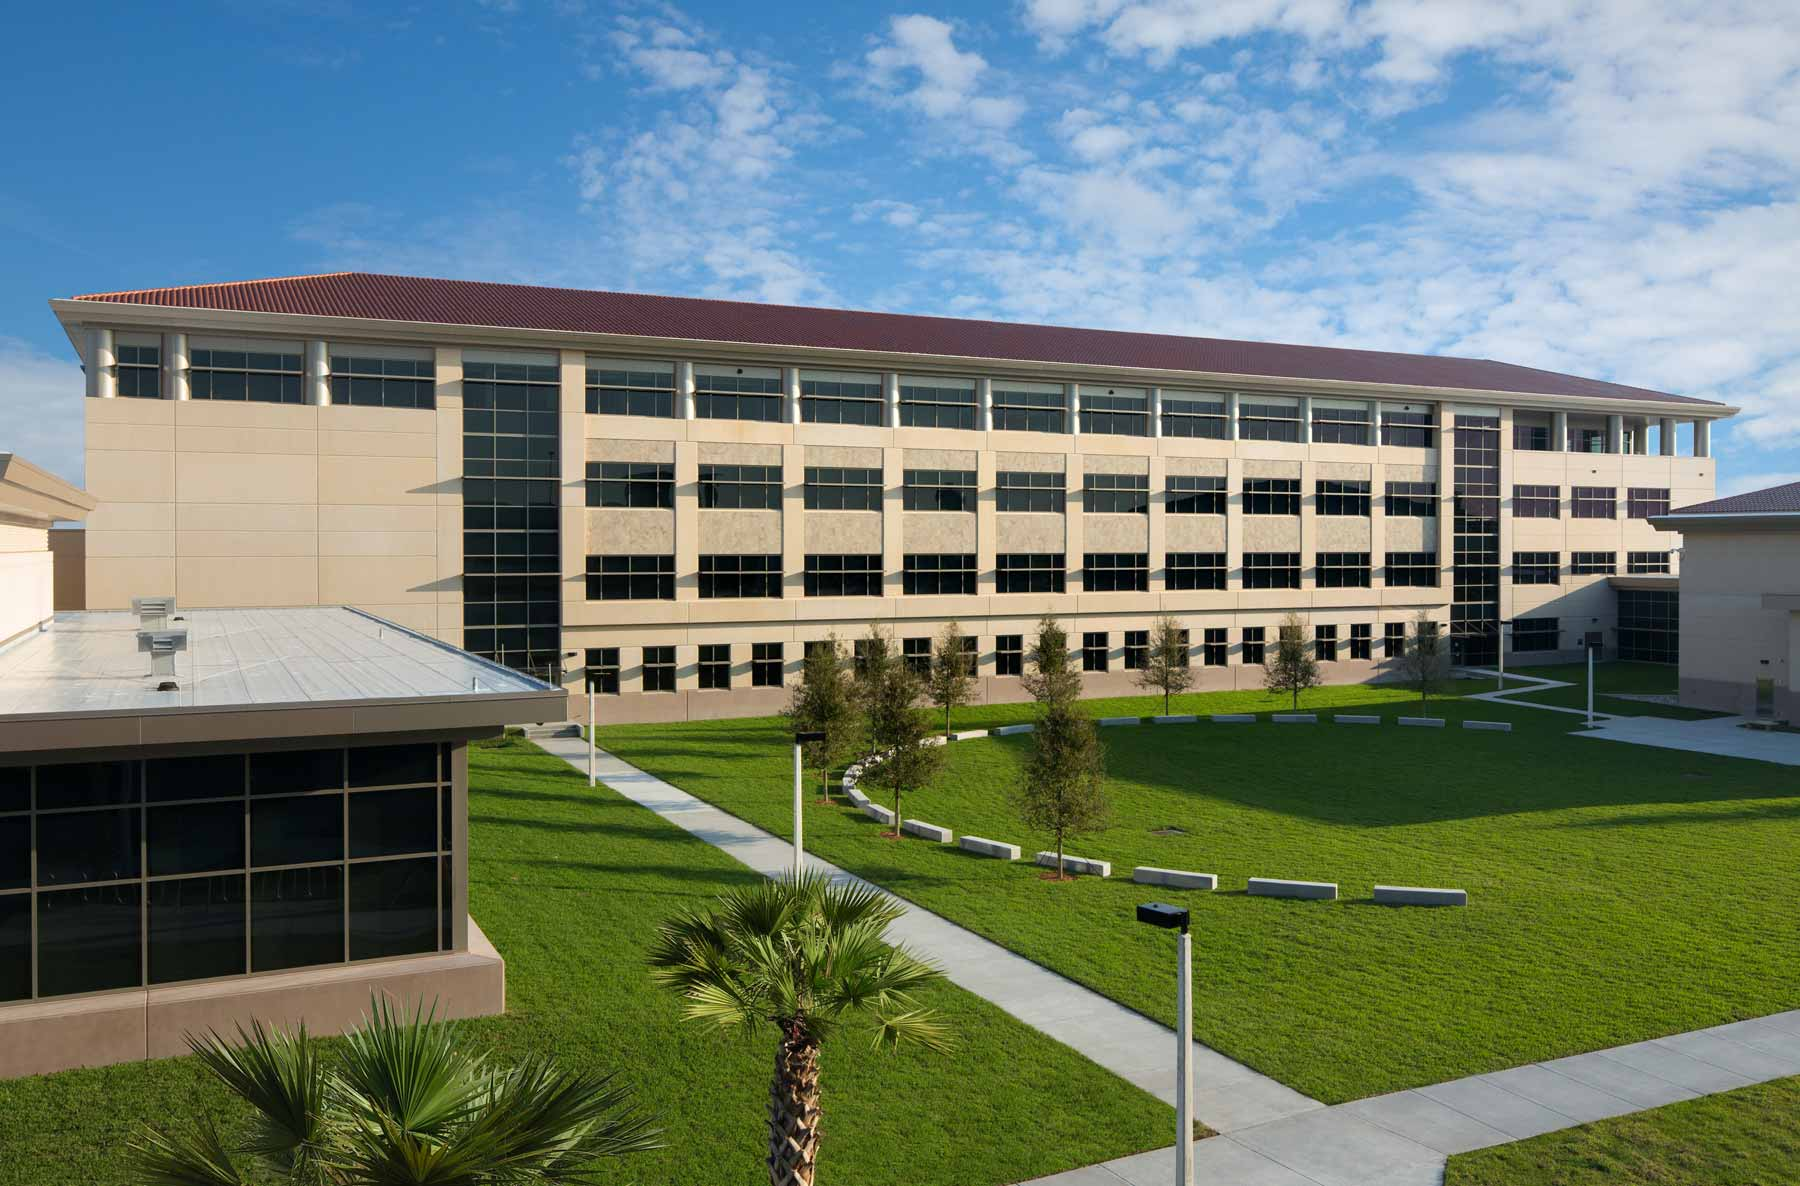 Patrick Air Force Base - Air Force Technical Applications Center